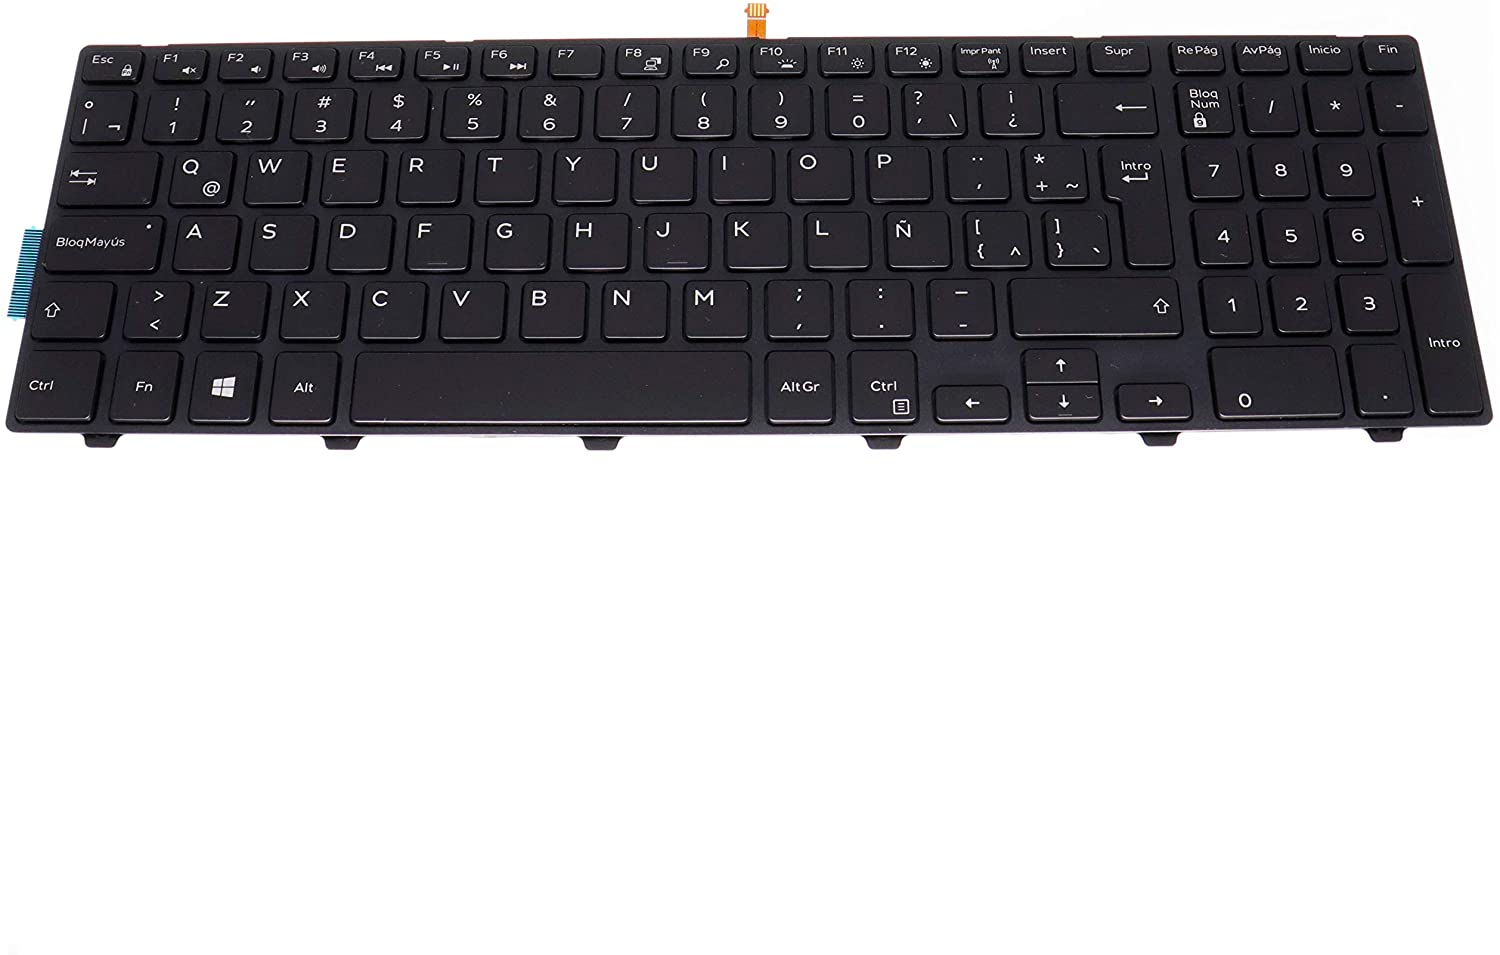 LeFix Latin LA Spanish Backlit Keyboard (with Frame) for Dell Inspiron 15 3542 3543 3551 3552 5542 5545 5547 5755 5551 5558 5552 5758 5759 7557 7559 5559| 17 5000 5748 5749 5755 5758 5759 Series